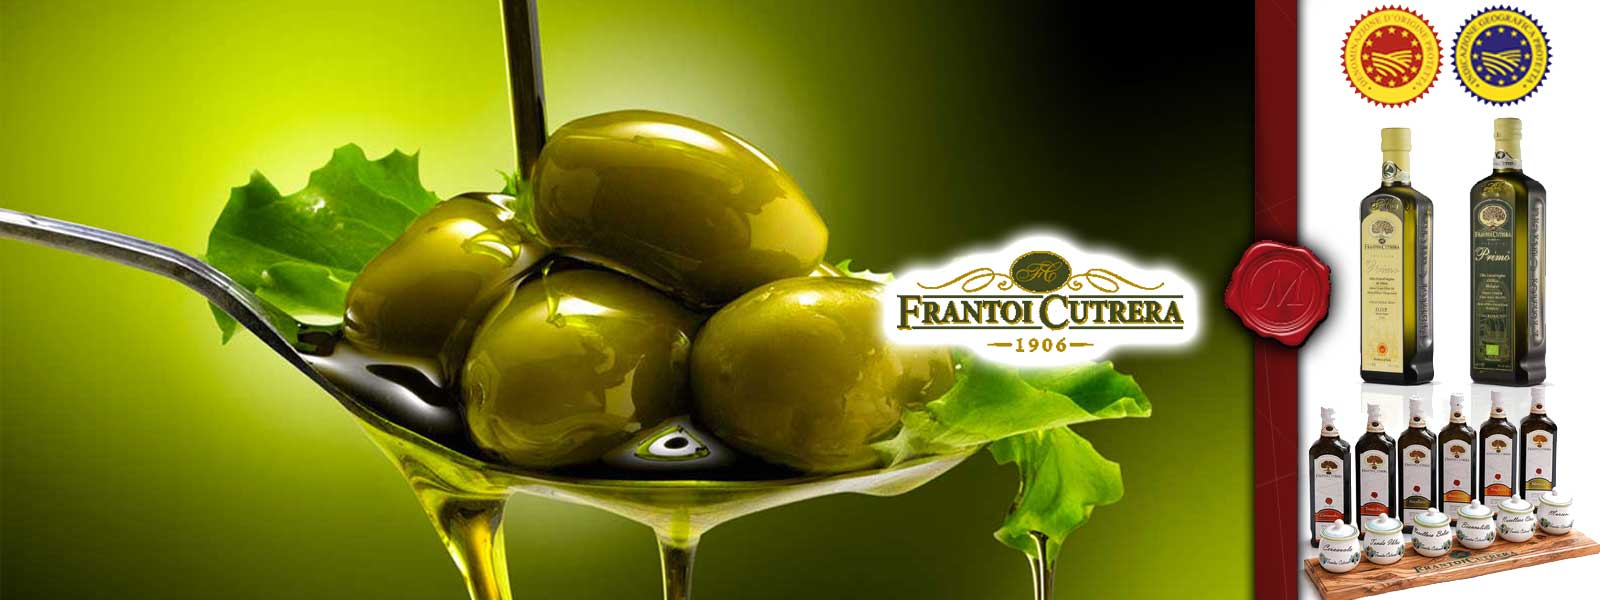 Olive oil from Frantoi Cutrera